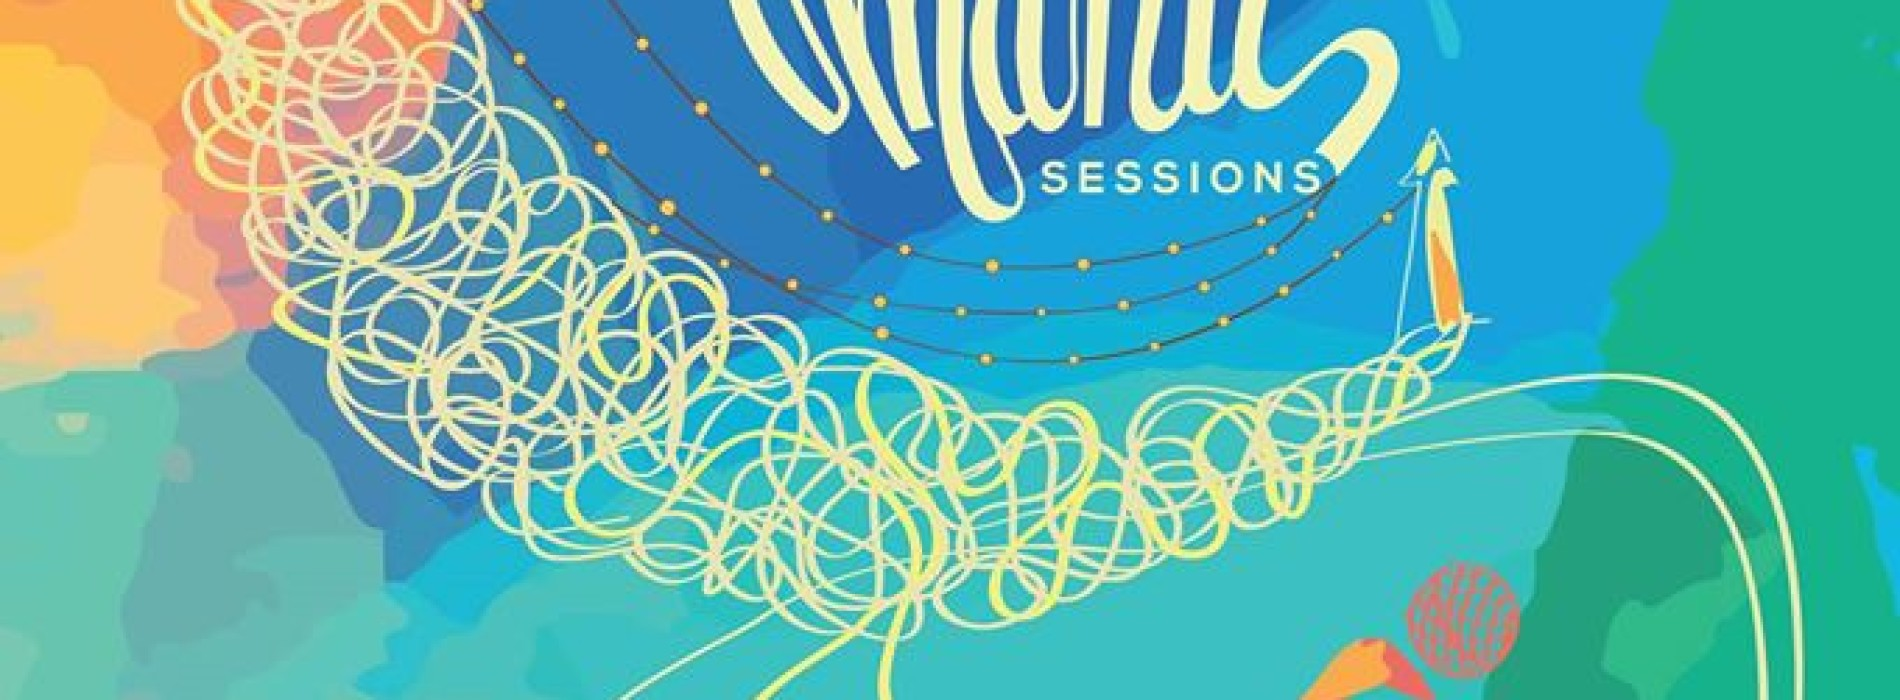 The Melomanic Sessions Comes To Galle This April